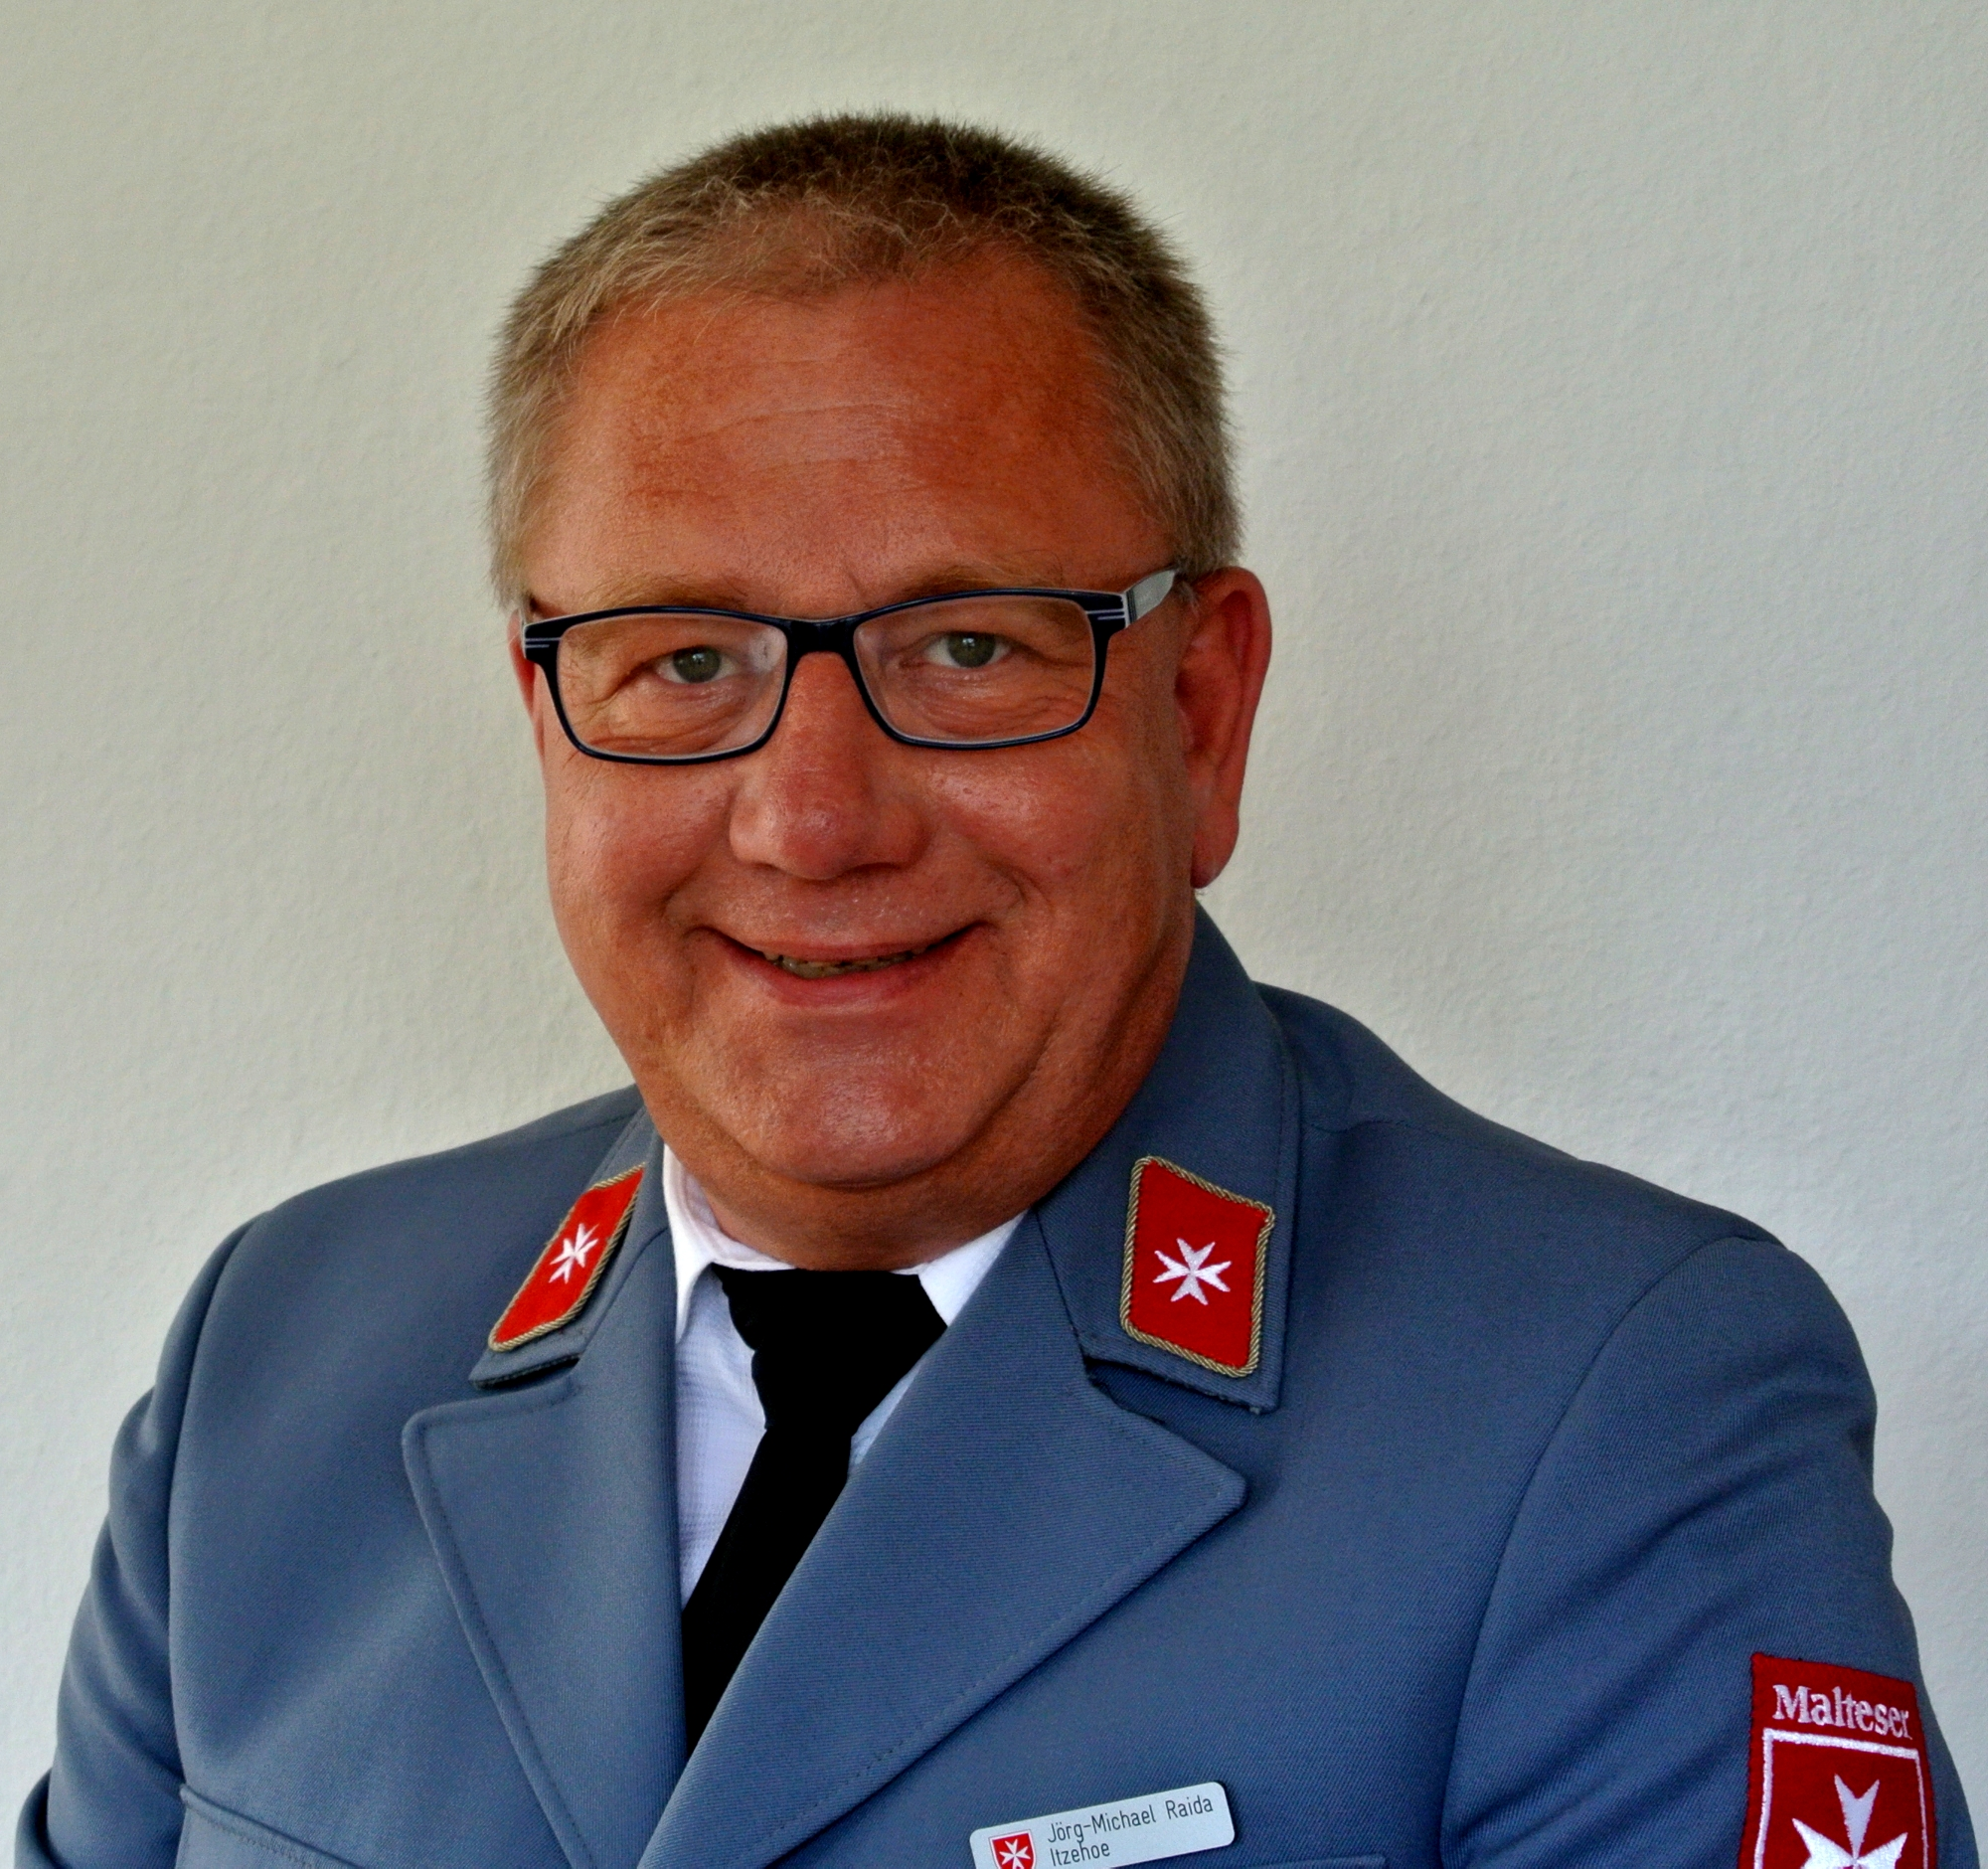 Jörg-Michael Raida